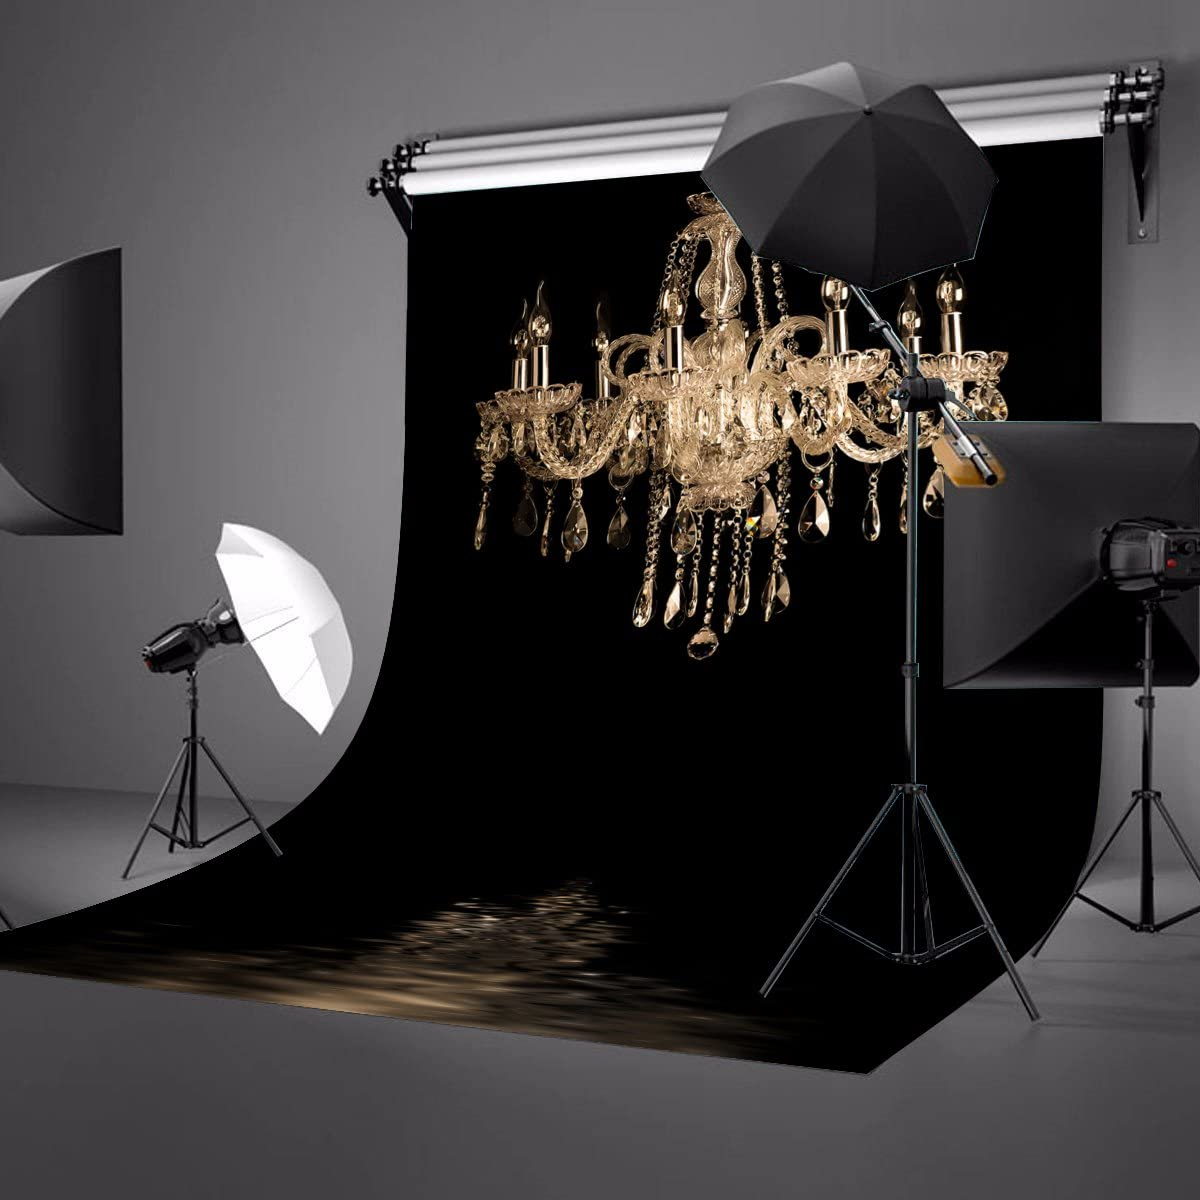 Lyly County 5/×7ft Chandelier Party Decoration Customized Photography Backdrop Background Studio Photo Props BG888